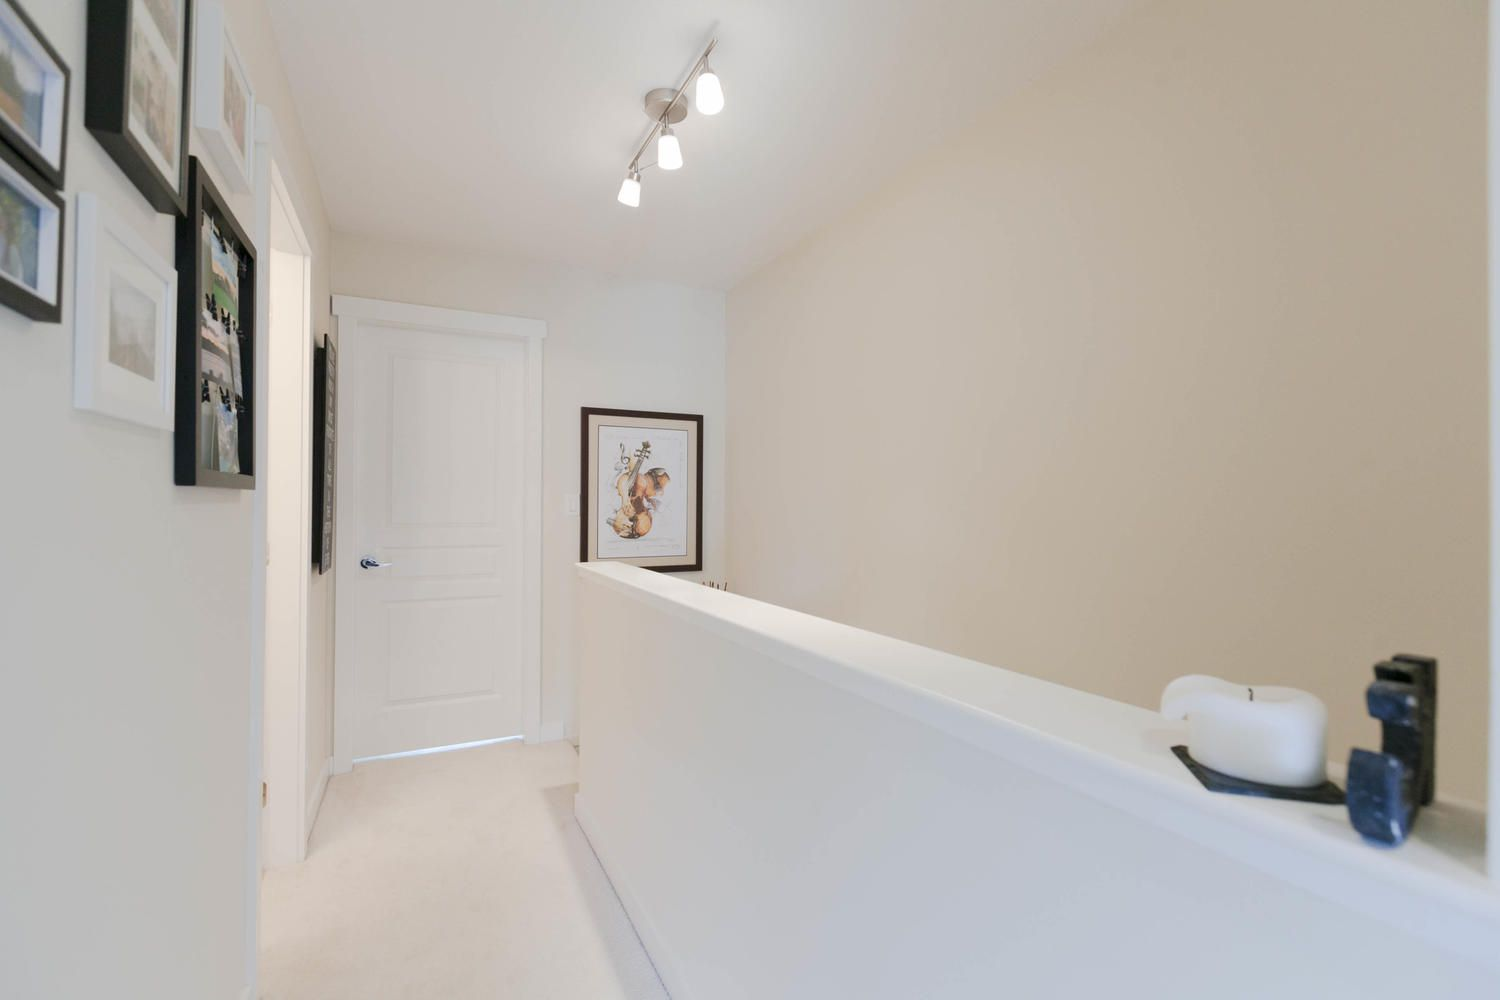 """Photo 22: Photos: 97 7938 209 Street in Langley: Willoughby Heights Townhouse for sale in """"Red Maple Park"""" : MLS®# R2260950"""